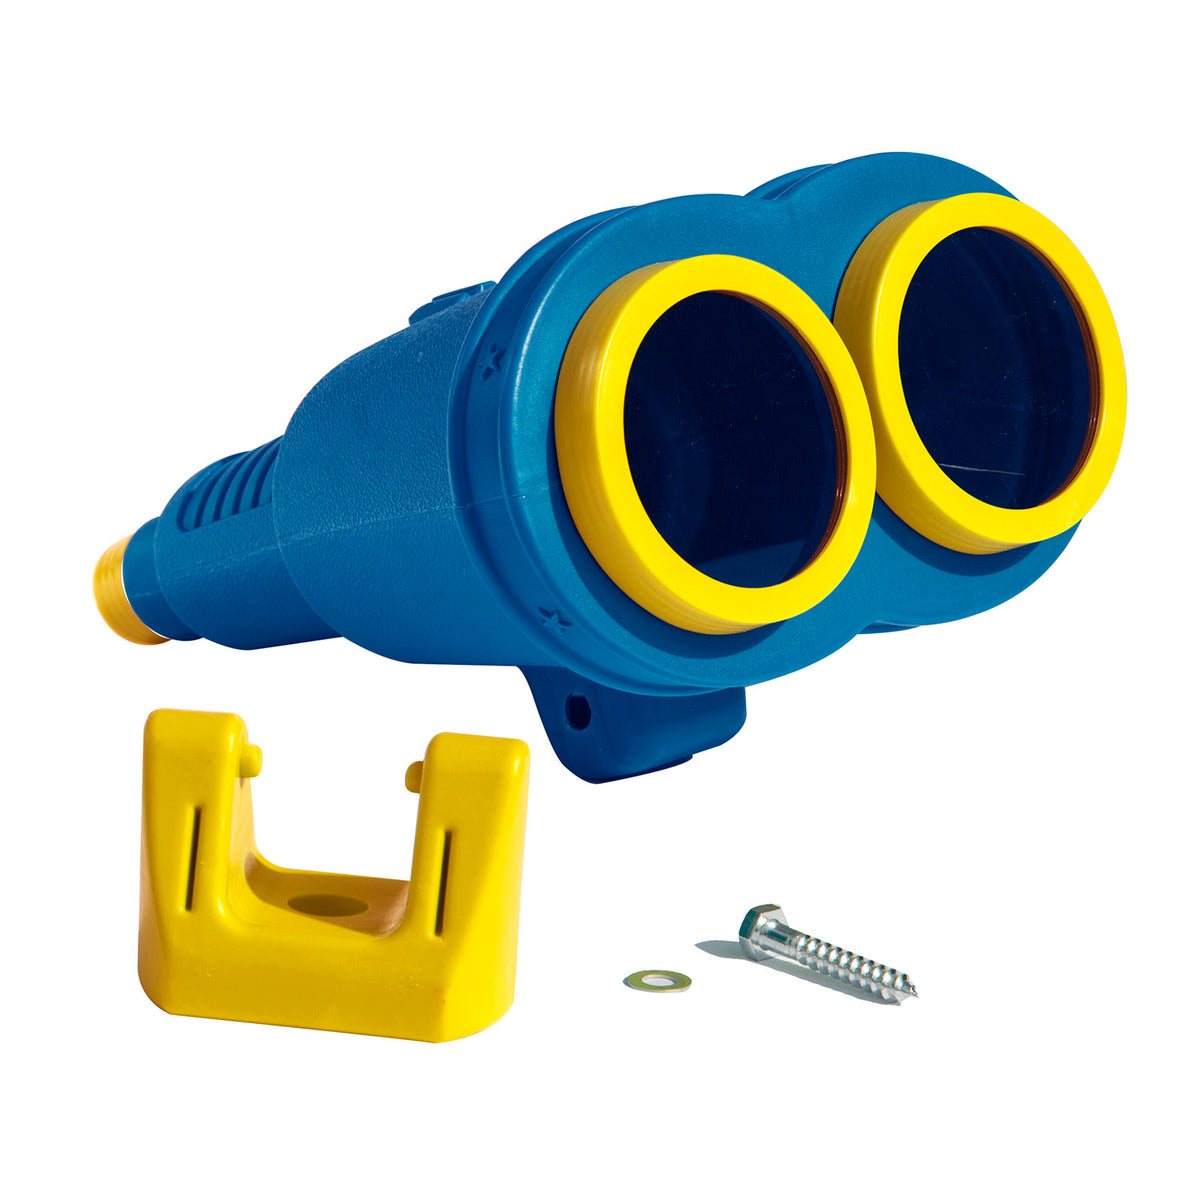 Gorilla-Playsets-Binoculars-Blue-White-Back-W-Accessories